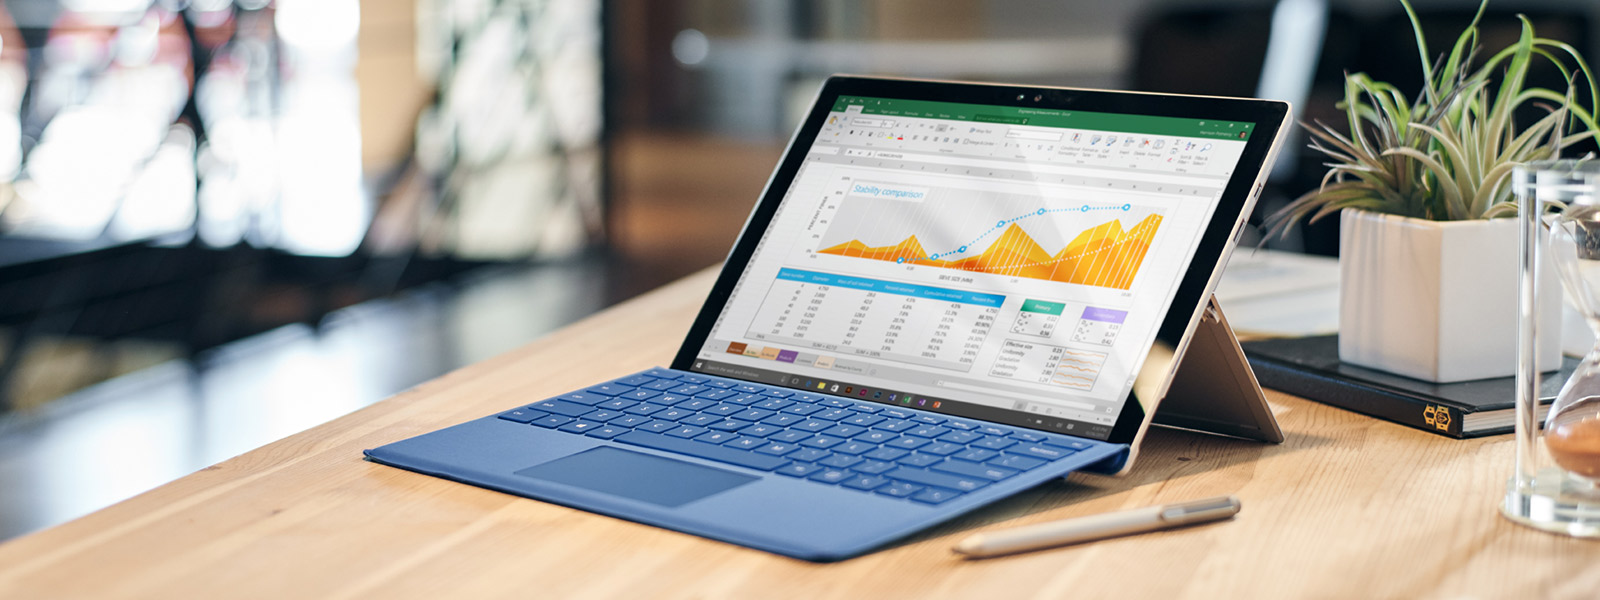 Surface Pro 4 on a table.